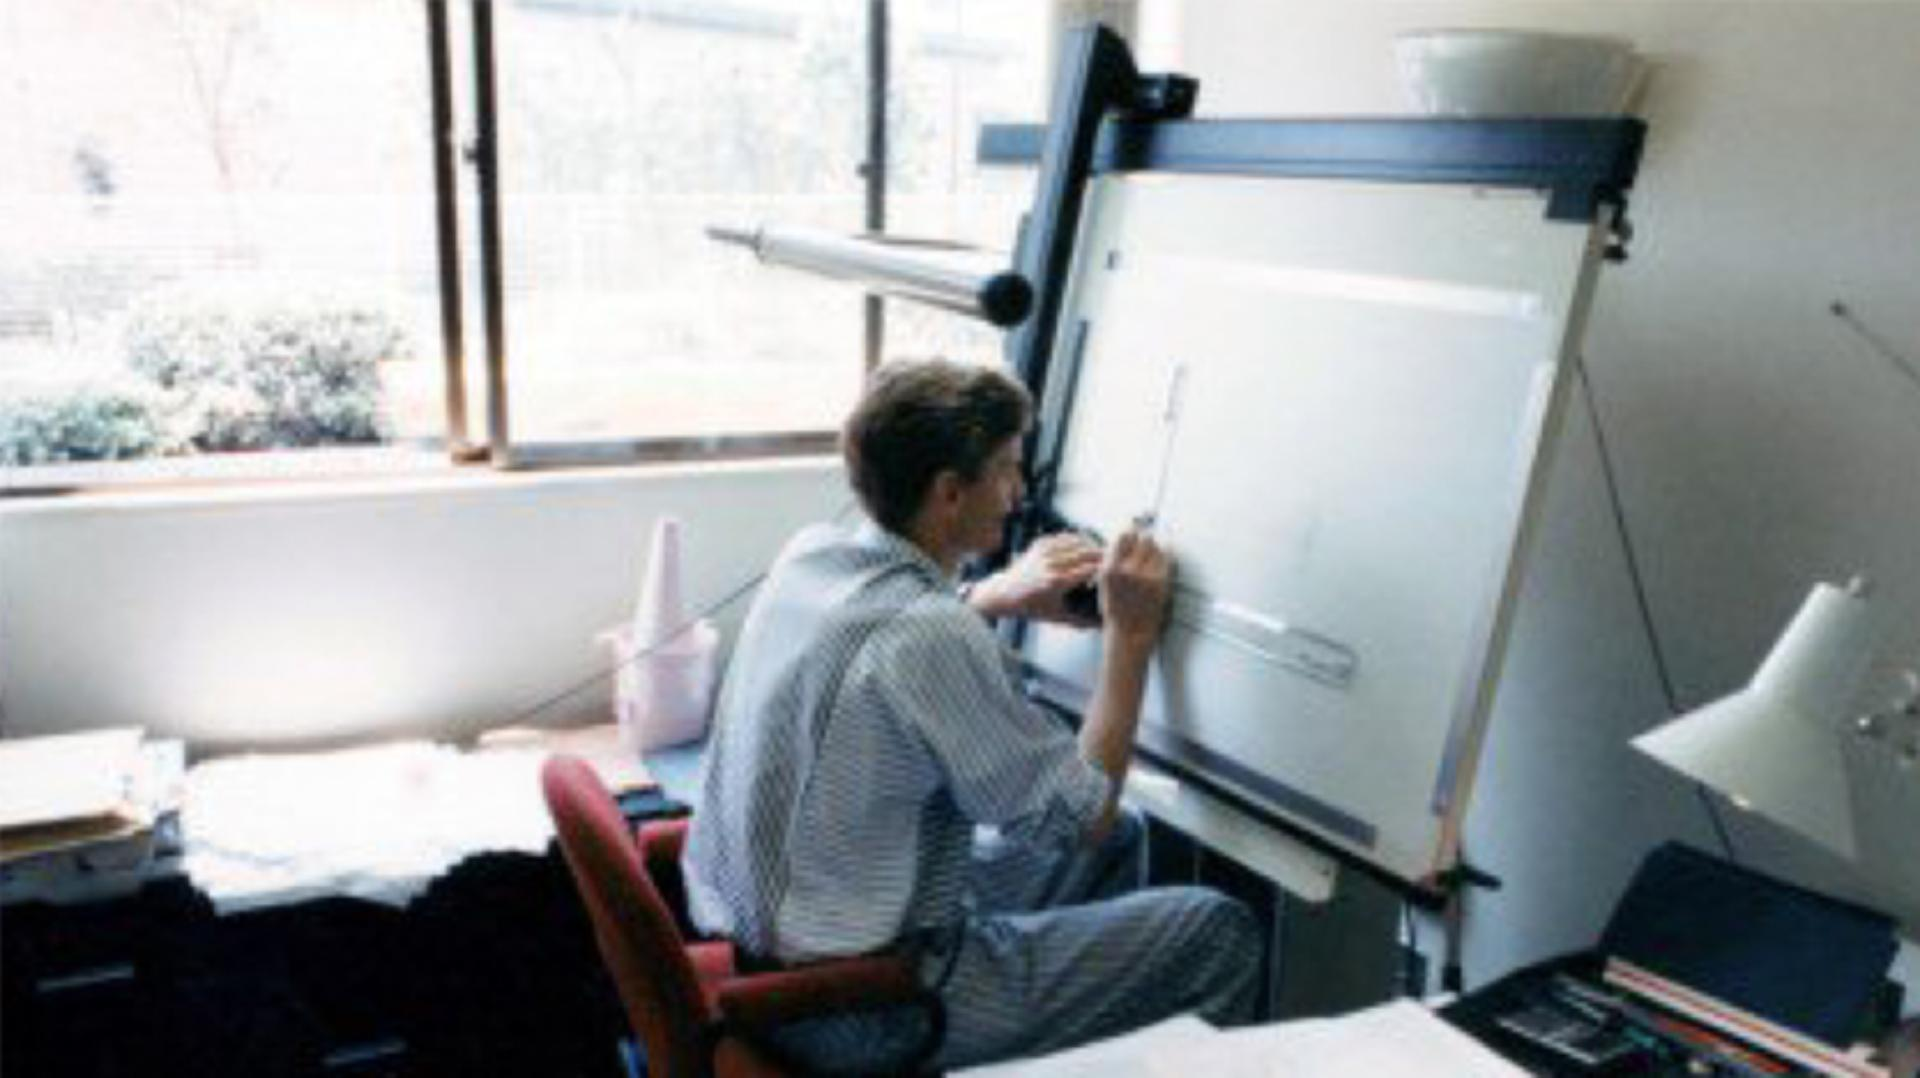 James Dyson seated in front of a technical drawing board